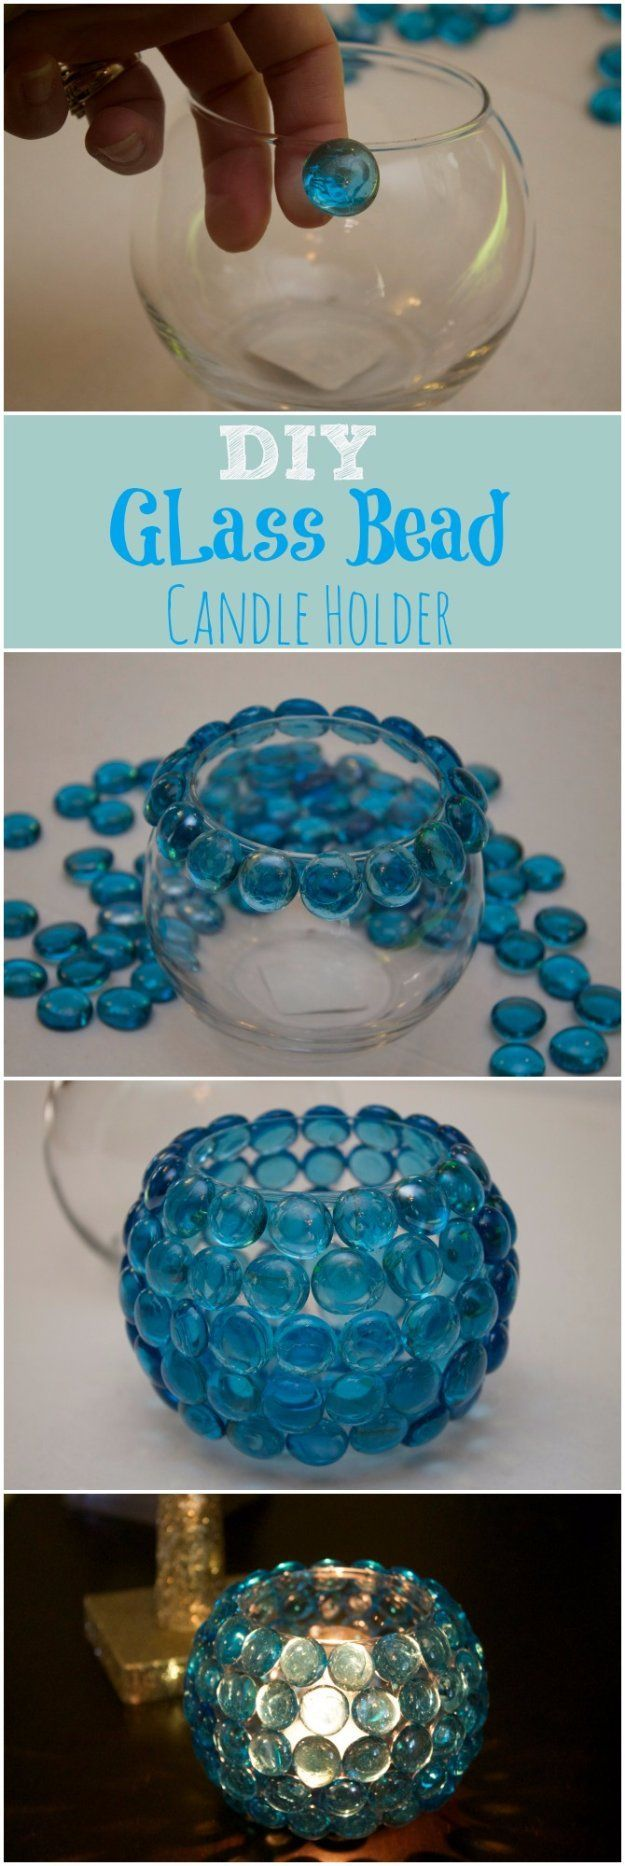 Easy Crafts To Make and Sell - DIY Glass Bead Vase - Cool…                                                                                                                                                                                 More